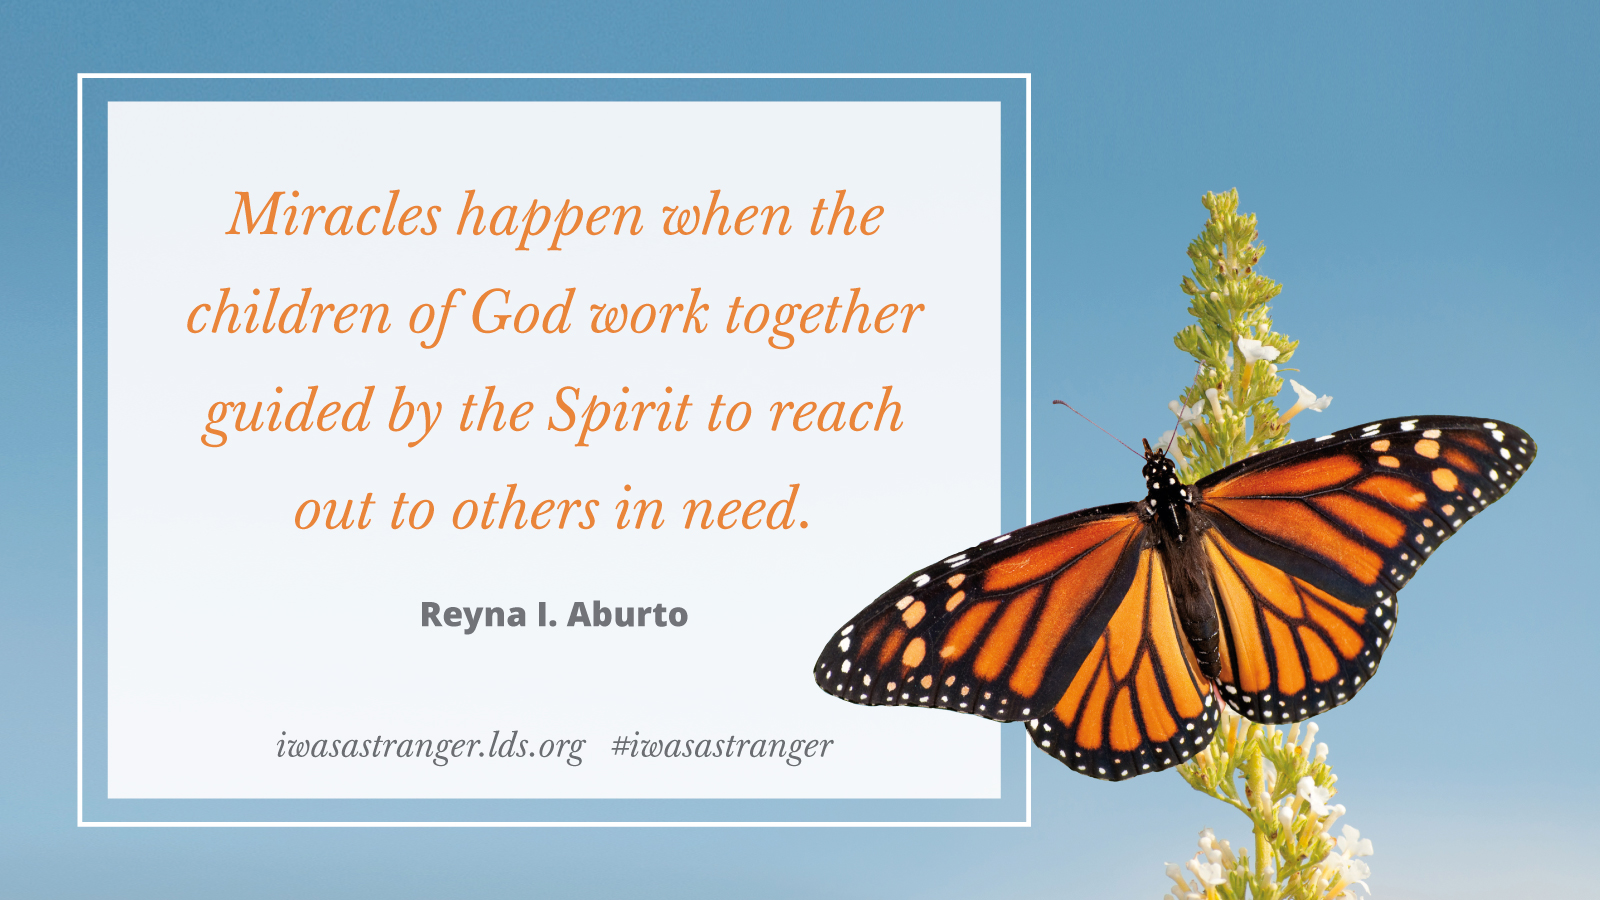 Miracles happen when children of God work together guided by the Spirit to reach out to others in need. Sister Reyna I. Aburto.